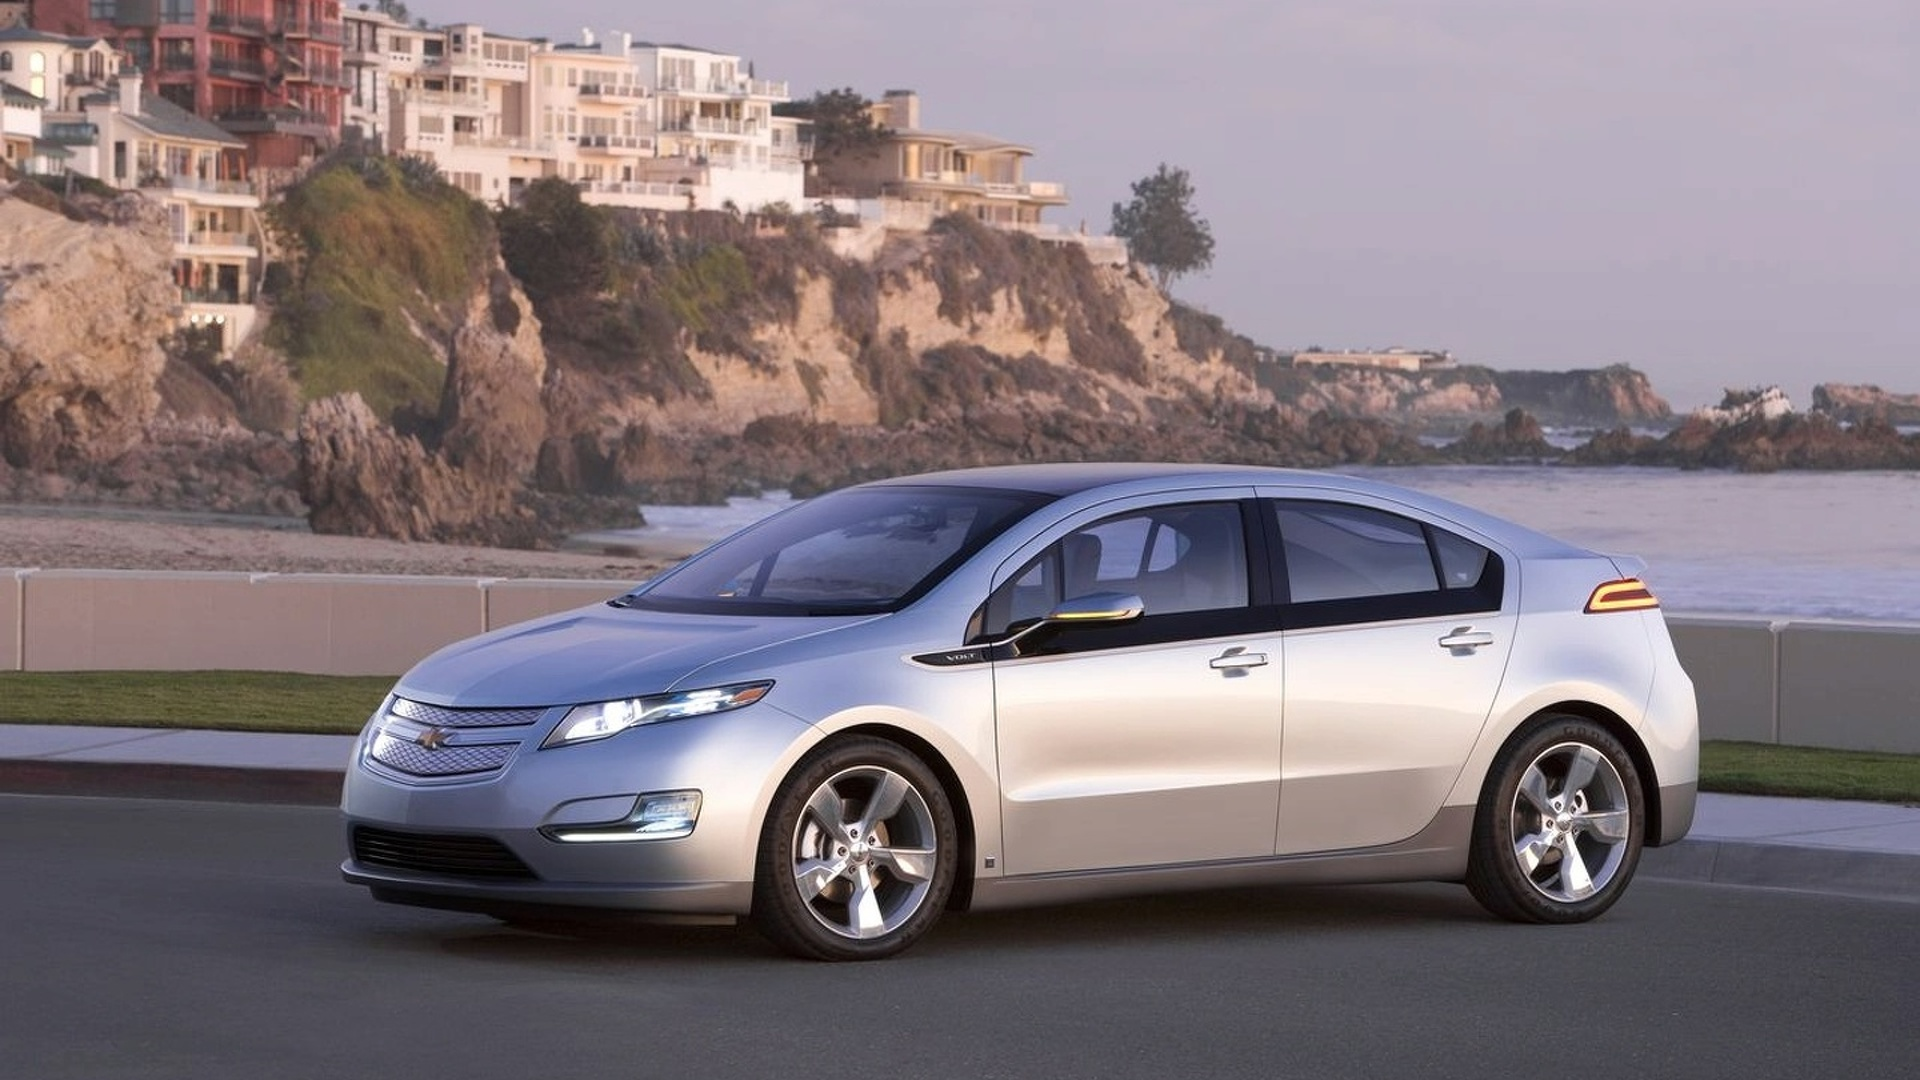 Chevrolet developing an entry-level Volt with a smaller battery - report